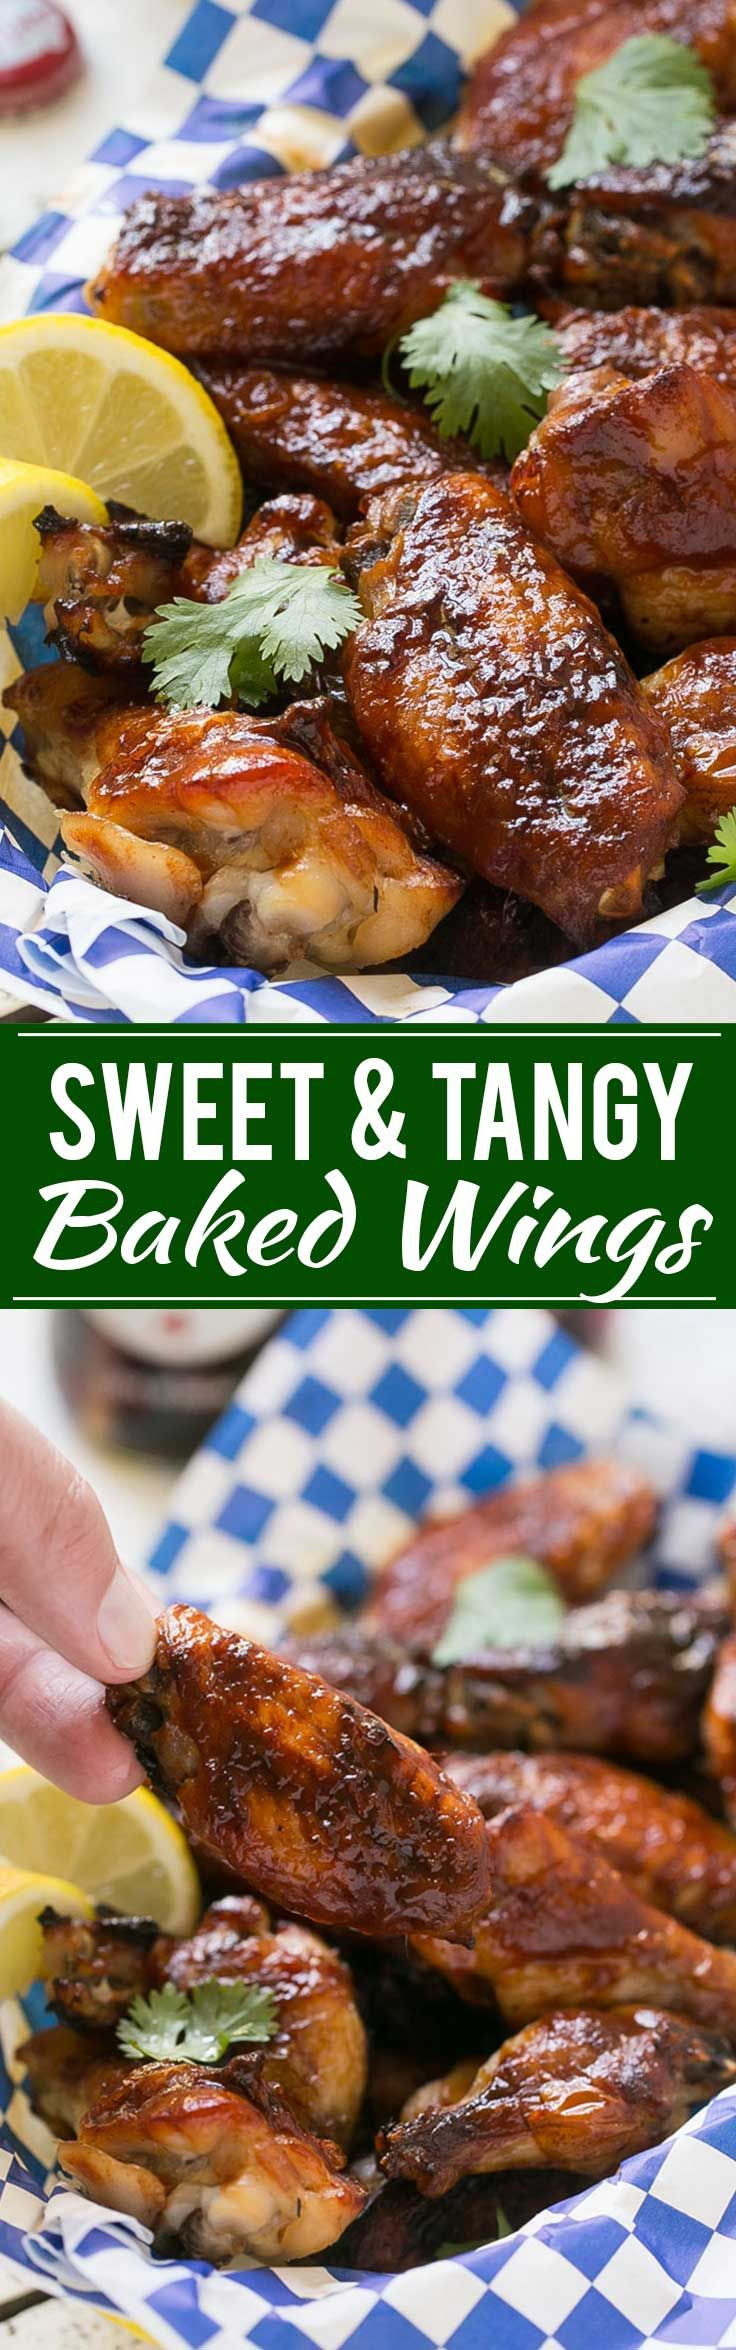 Homemade Chicken Wings  1000 ideas about Baked Turkey Wings on Pinterest